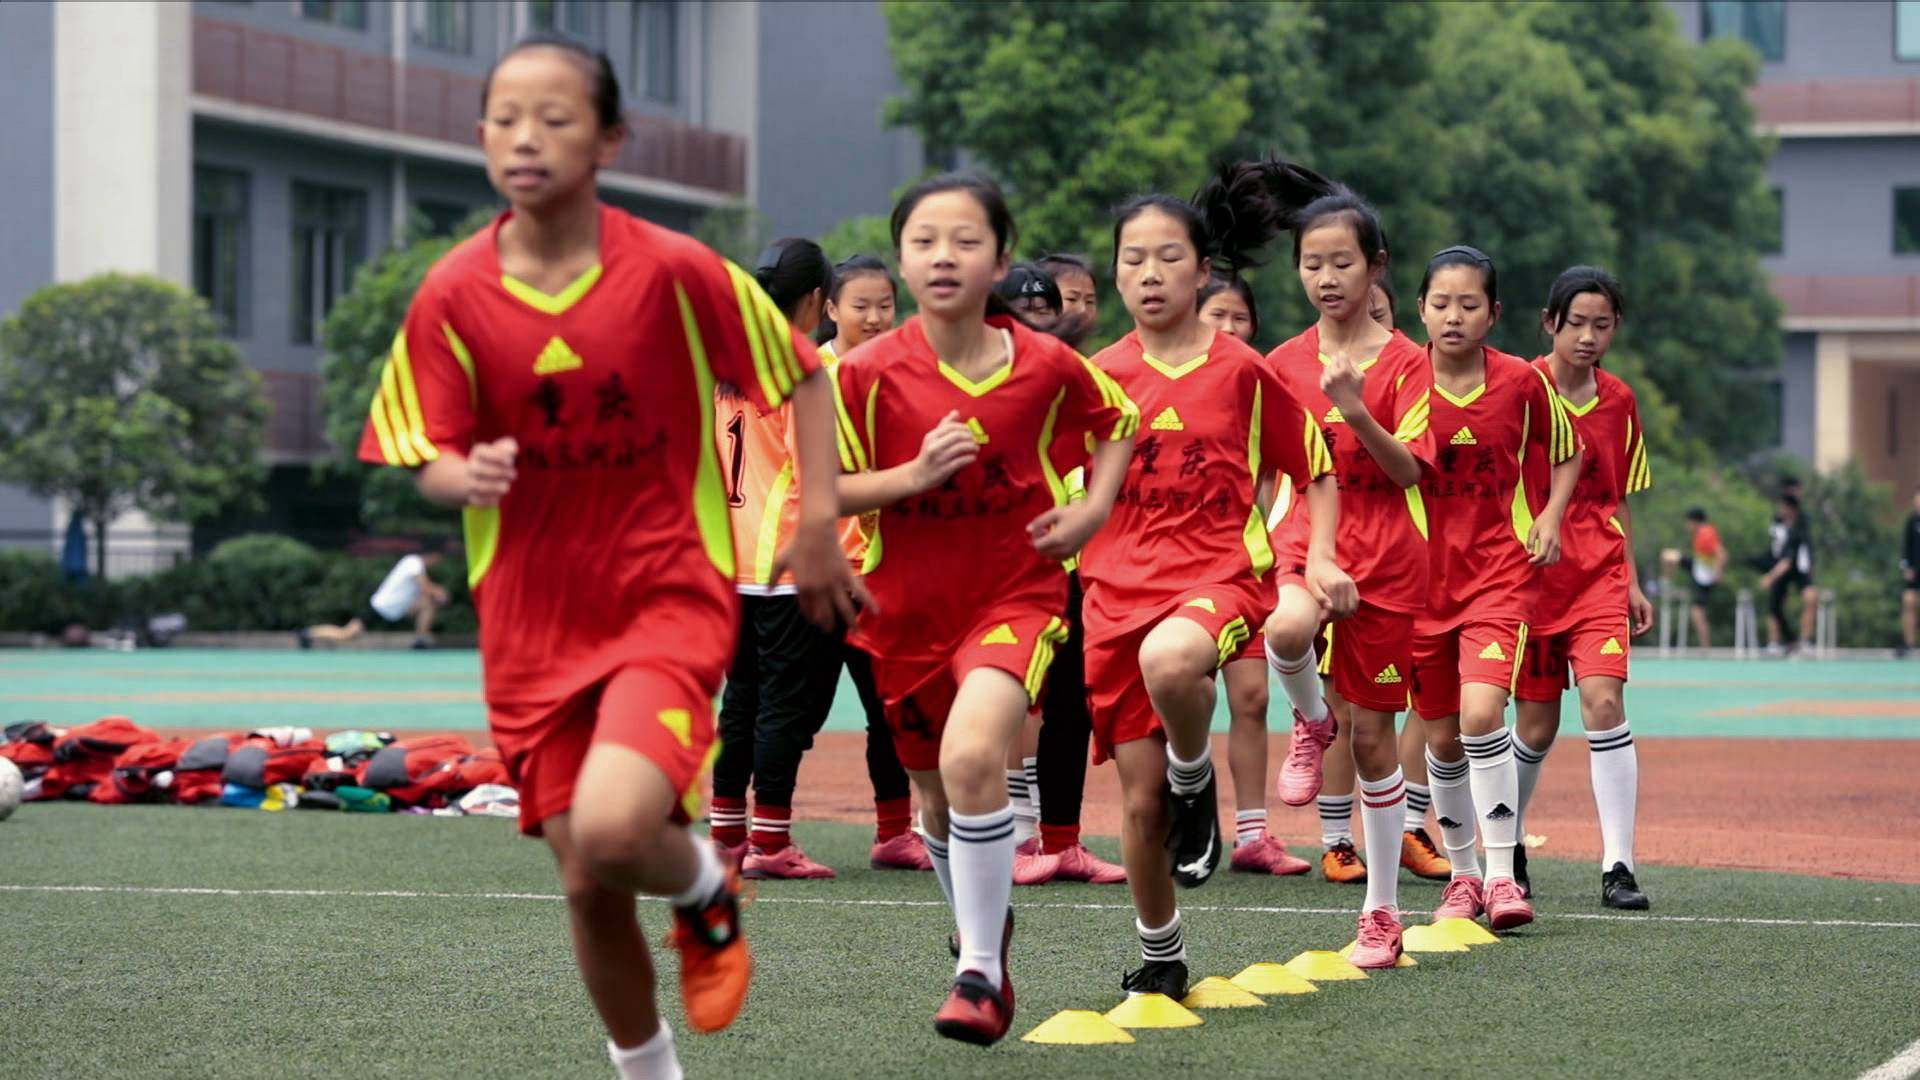 A shot at a better future: The rural Chongqing girls playing their way into inner-city education